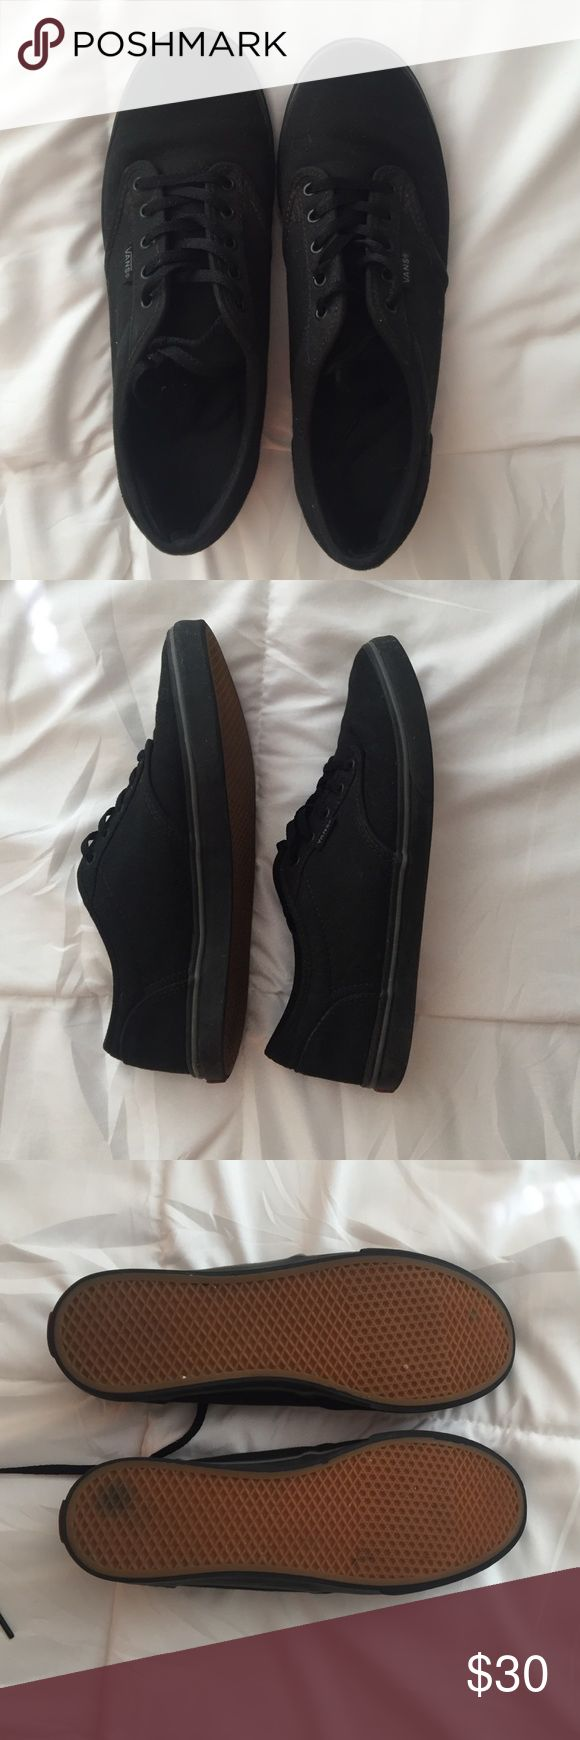 BLACK VANS WORN ONCE OR TWICE IN GREAT CONDITION!! Vans Shoes Sneakers